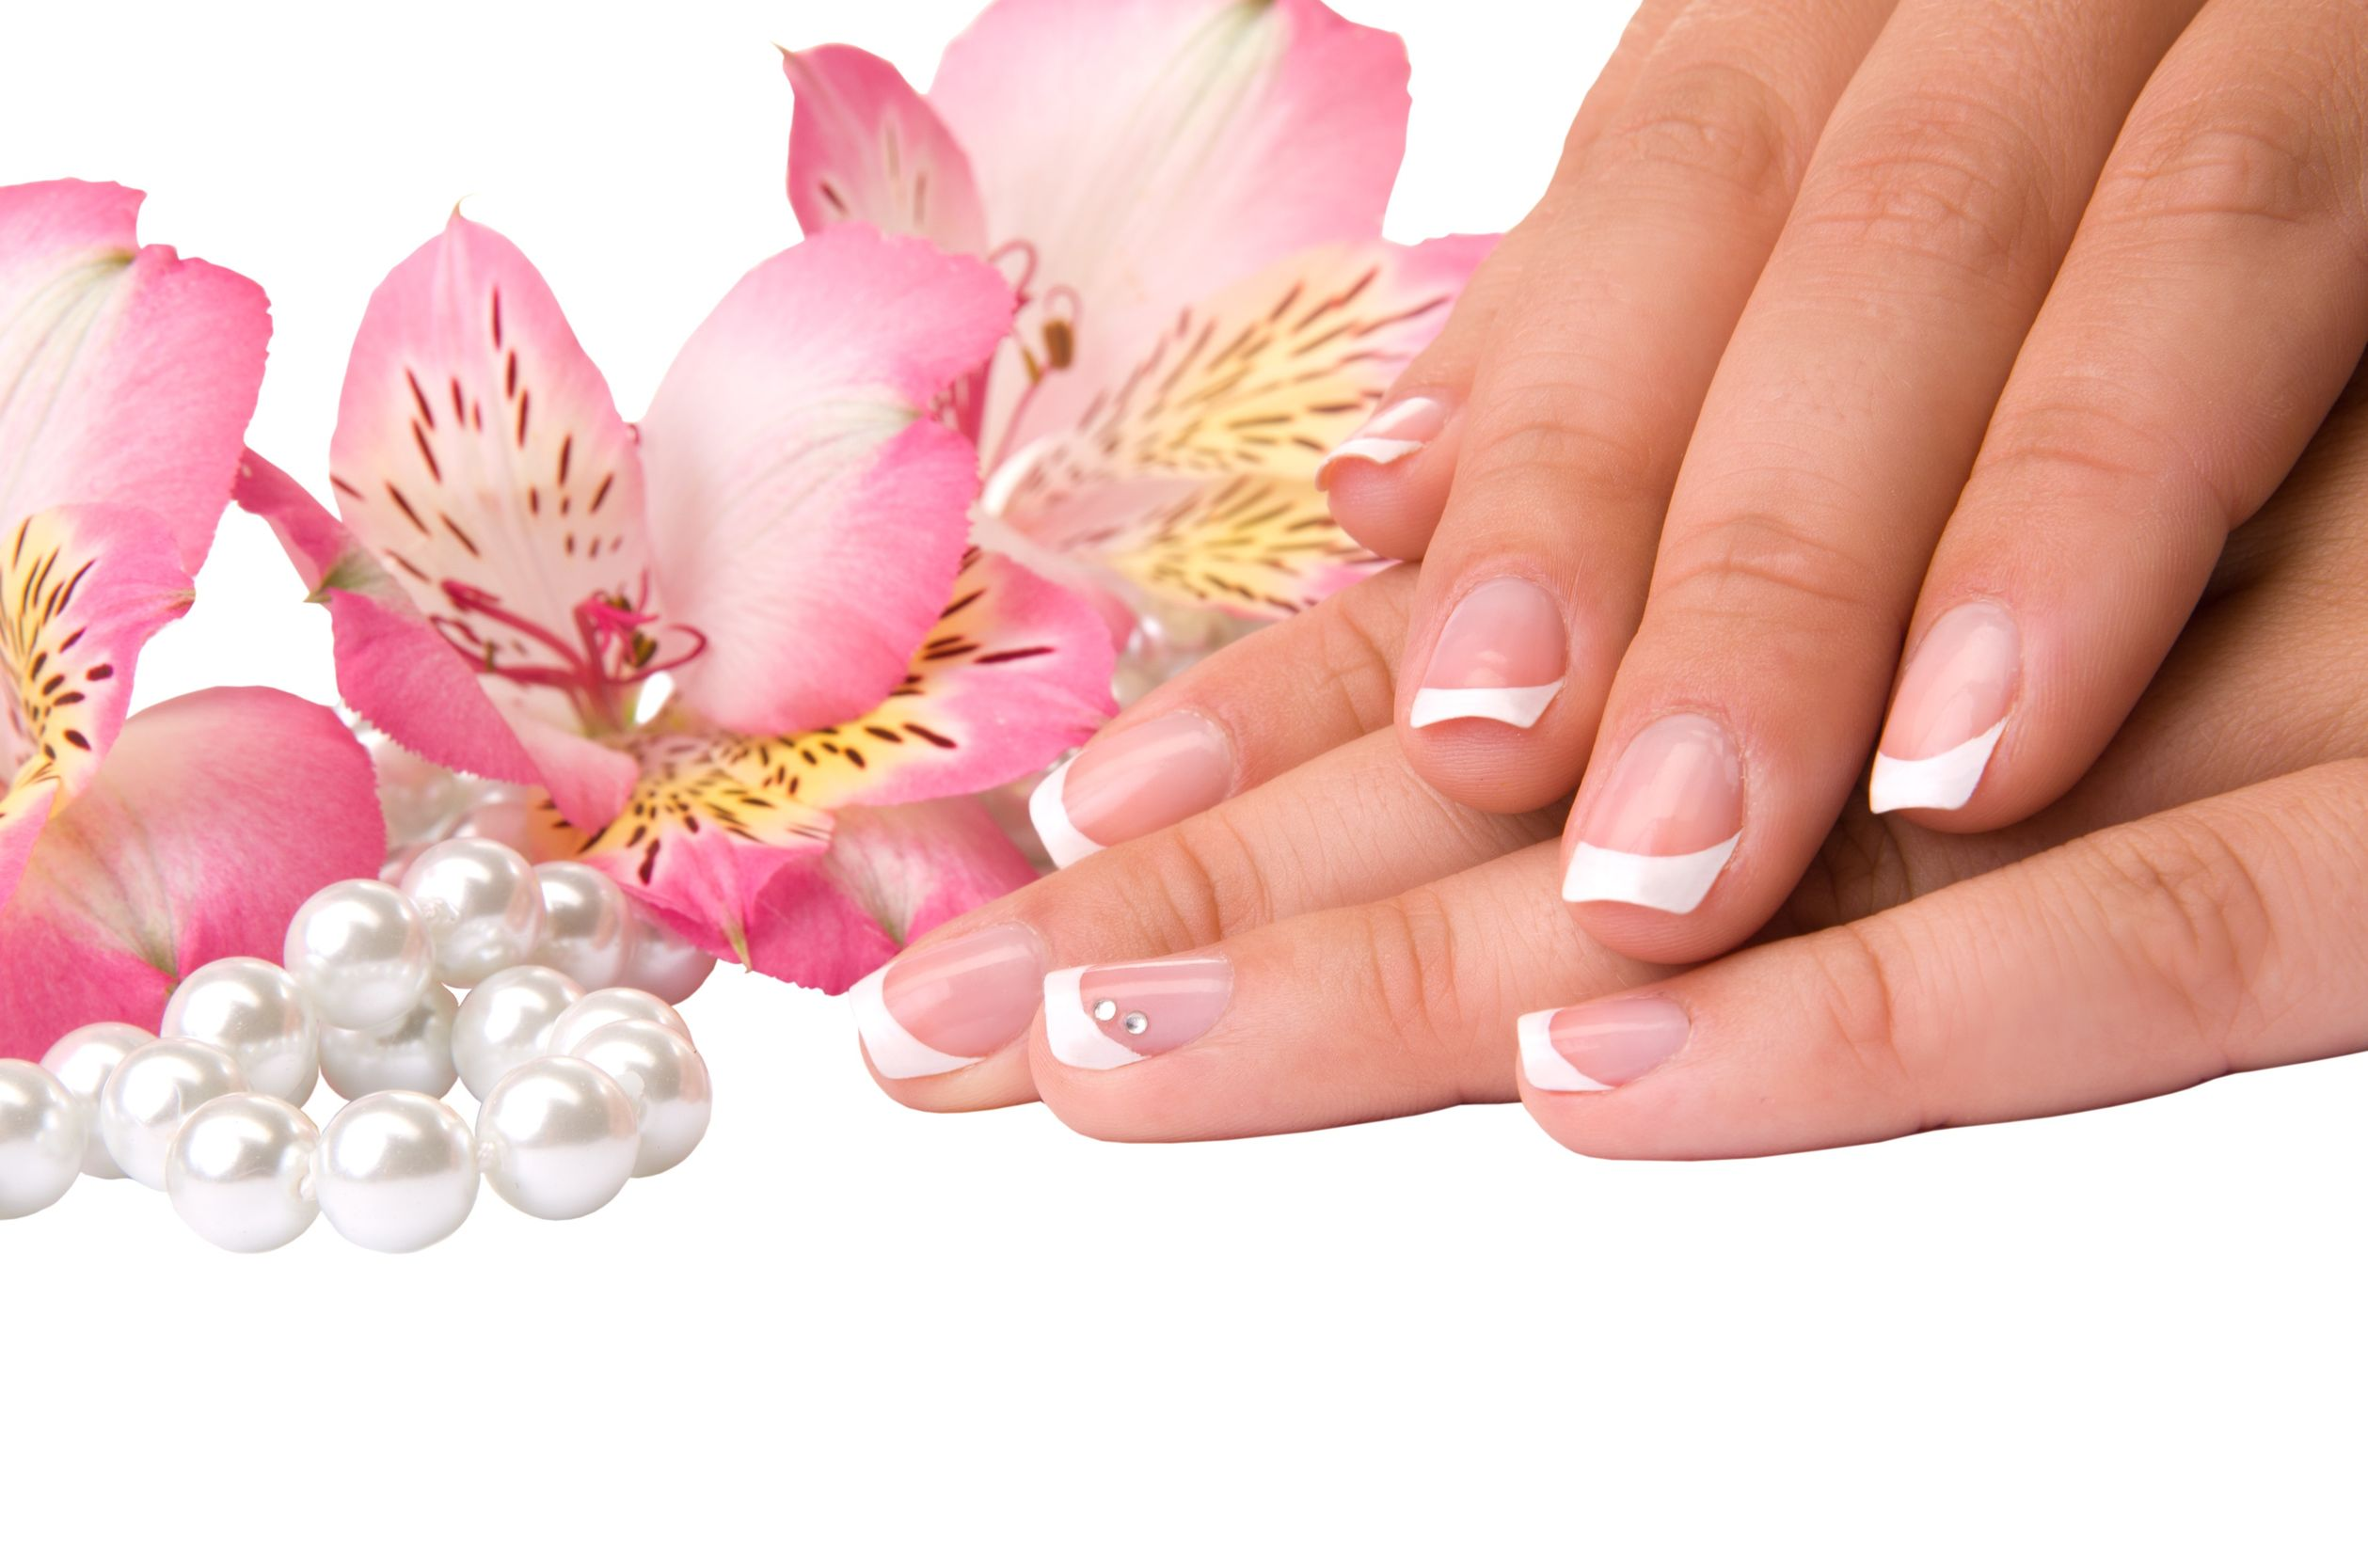 Nail Spa Wallpaper Collection 8 Wallpapers HD Wallpapers Download Free Images Wallpaper [1000image.com]